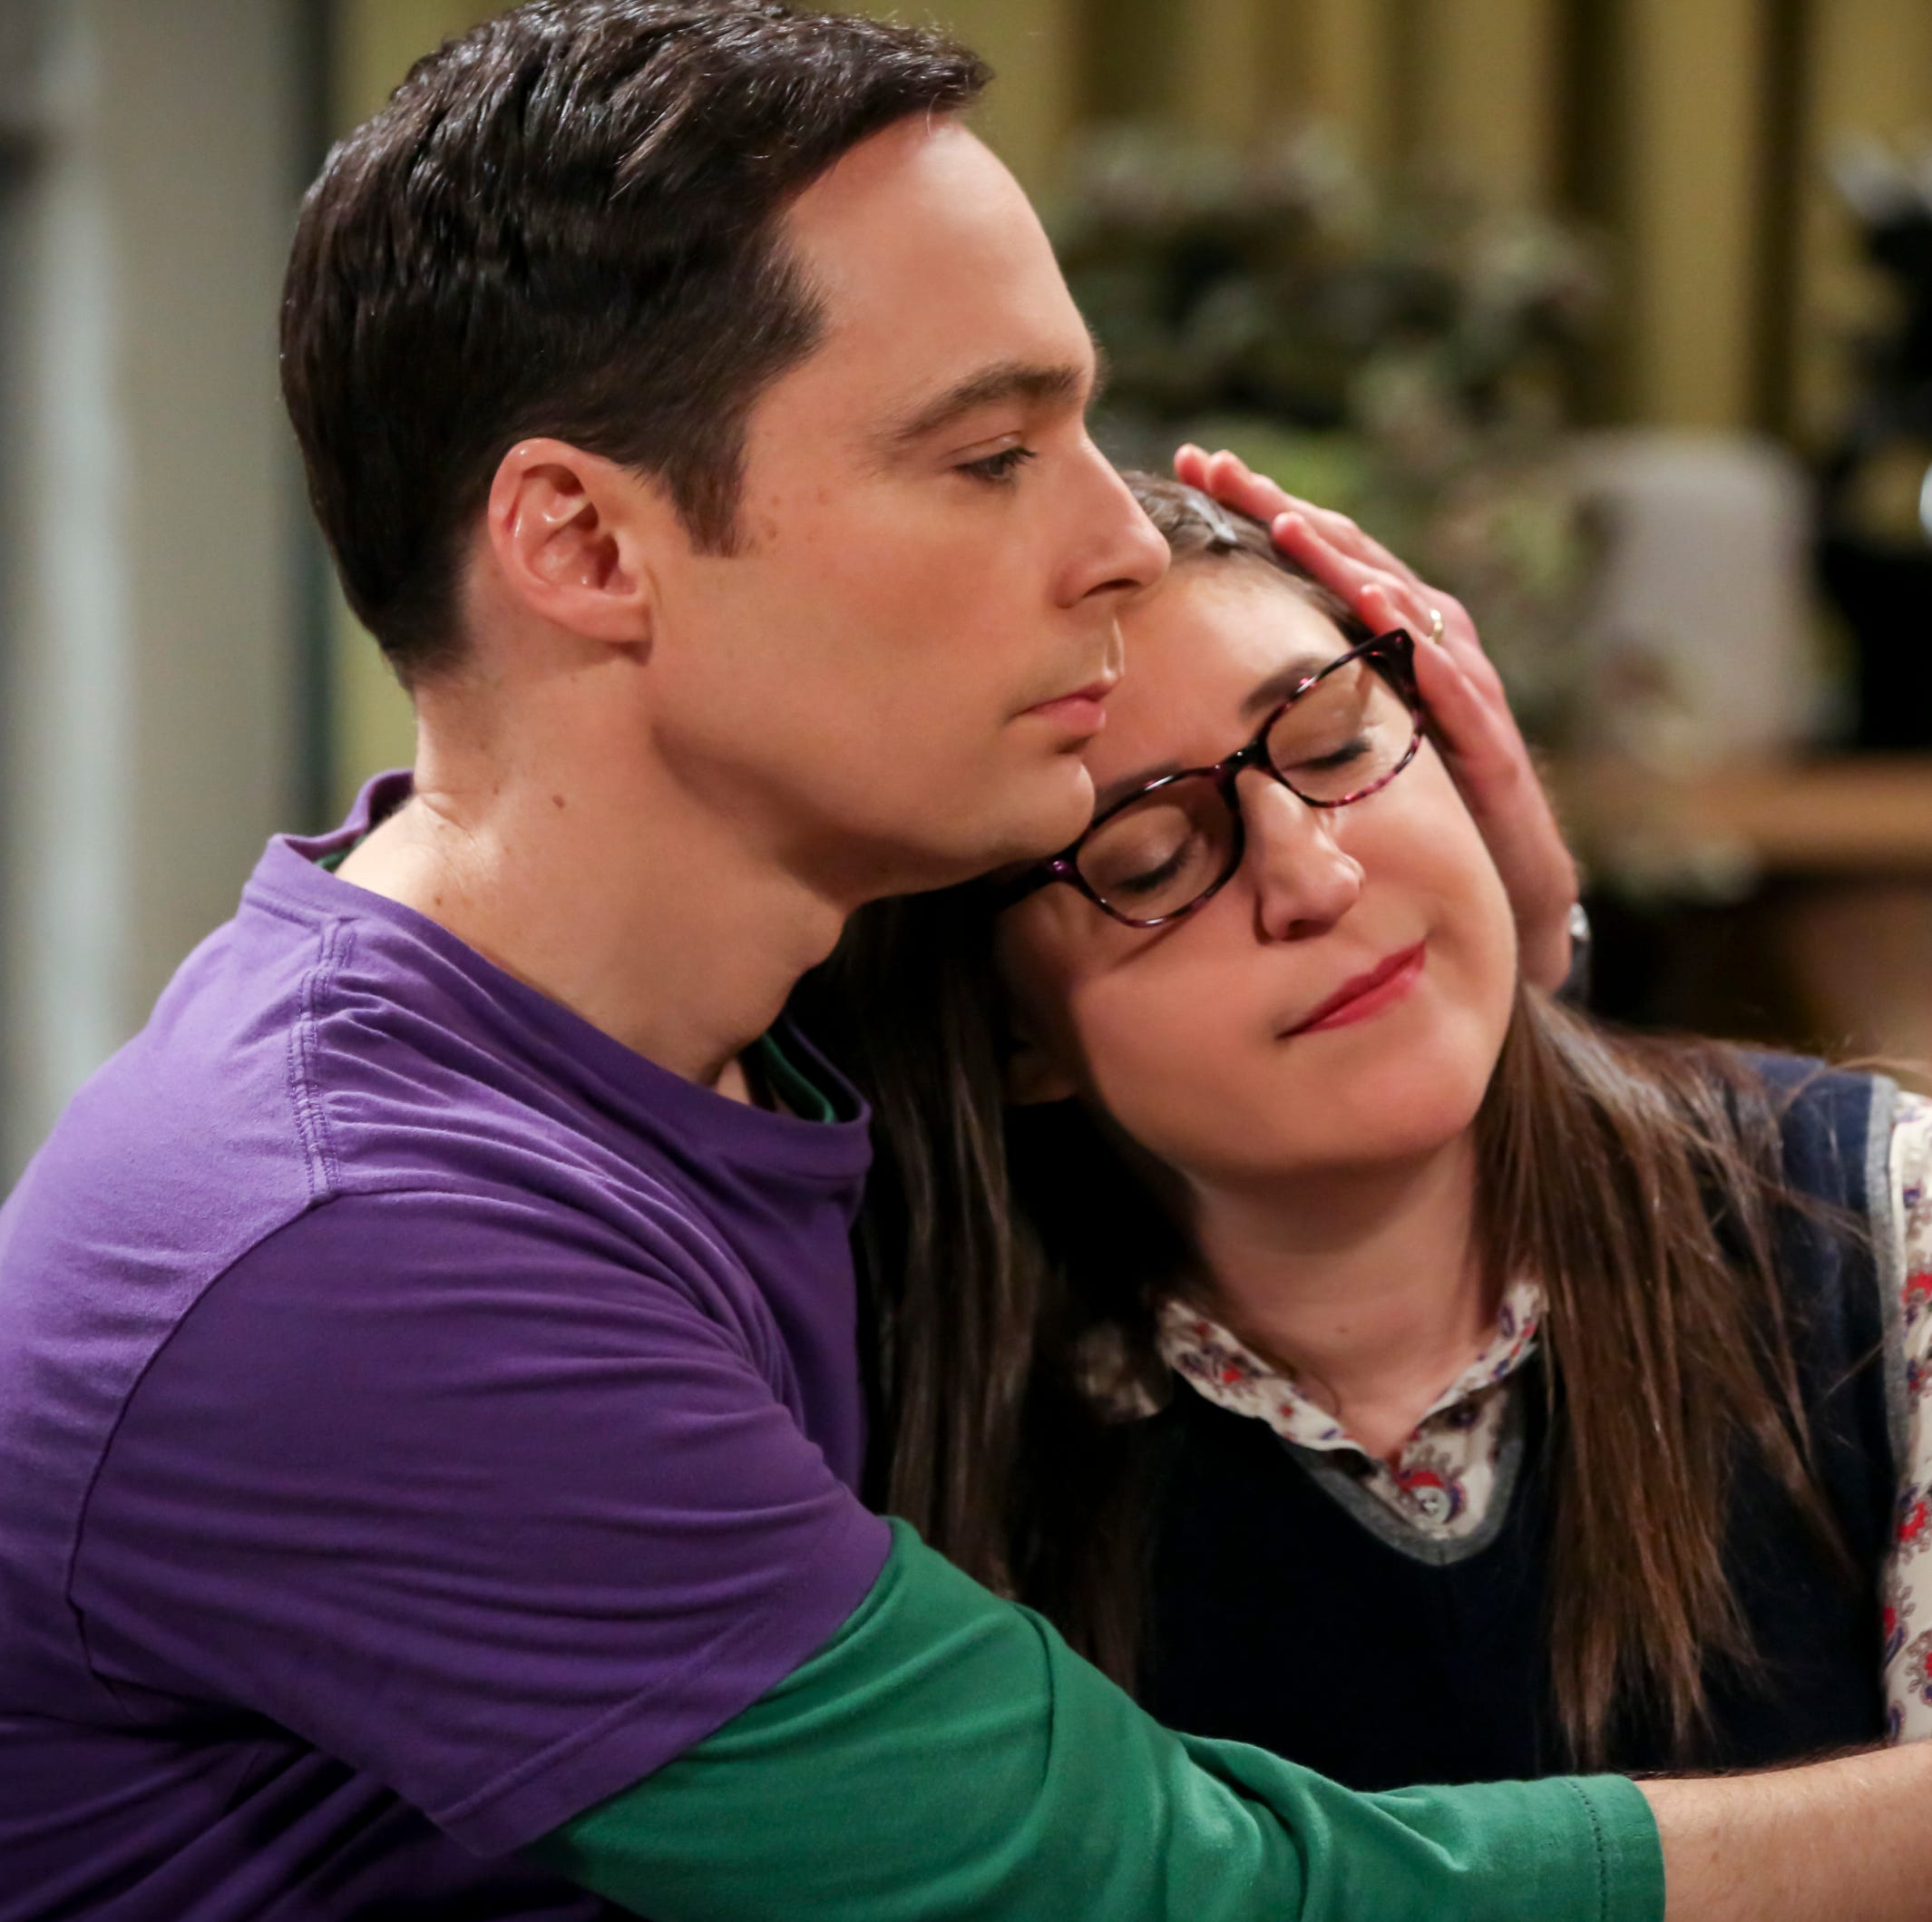 It's been a long, often slow-moving process, but the relationship between Sheldon (Jim Parsons), left, and Amy (Mayim Bialik) has made great progress over the years.